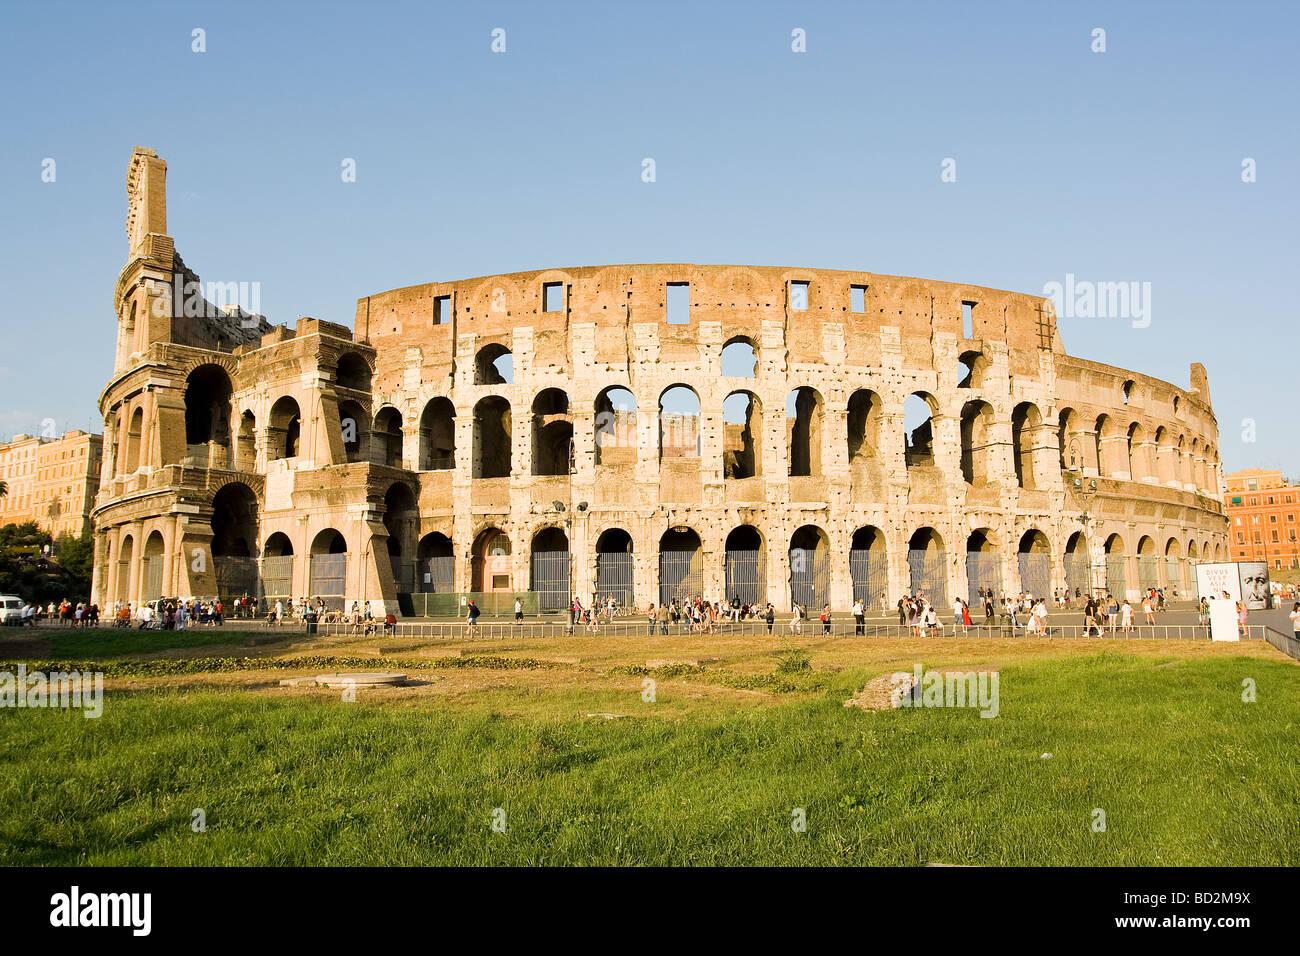 Colosseum wideangle - Stock Image